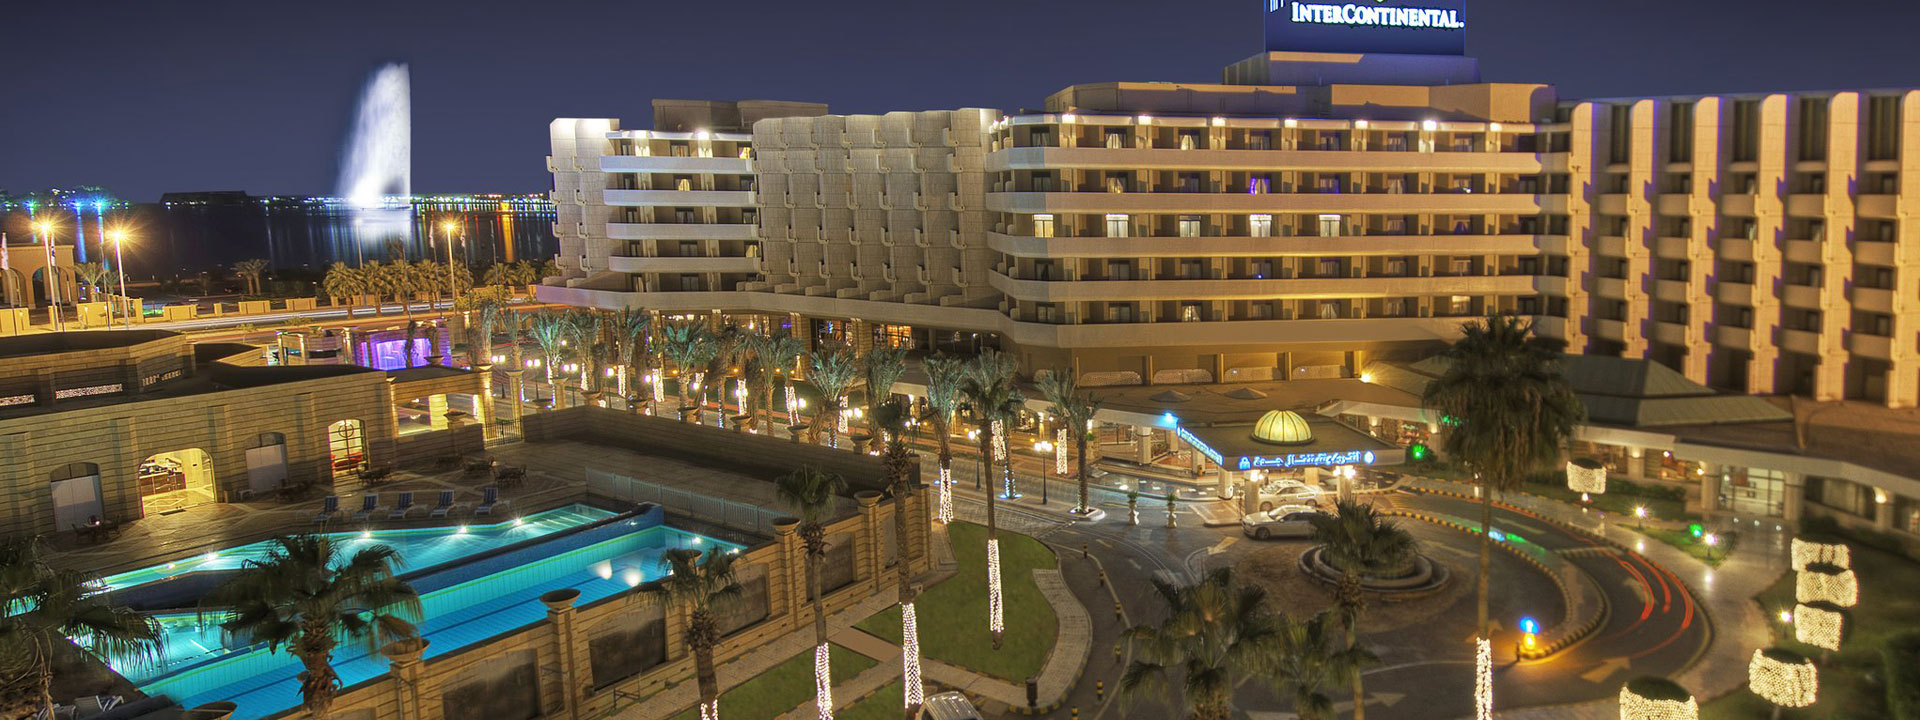 Loyd-Capital-Partners-Intercontinental-Hotel-Saudi-Arabia